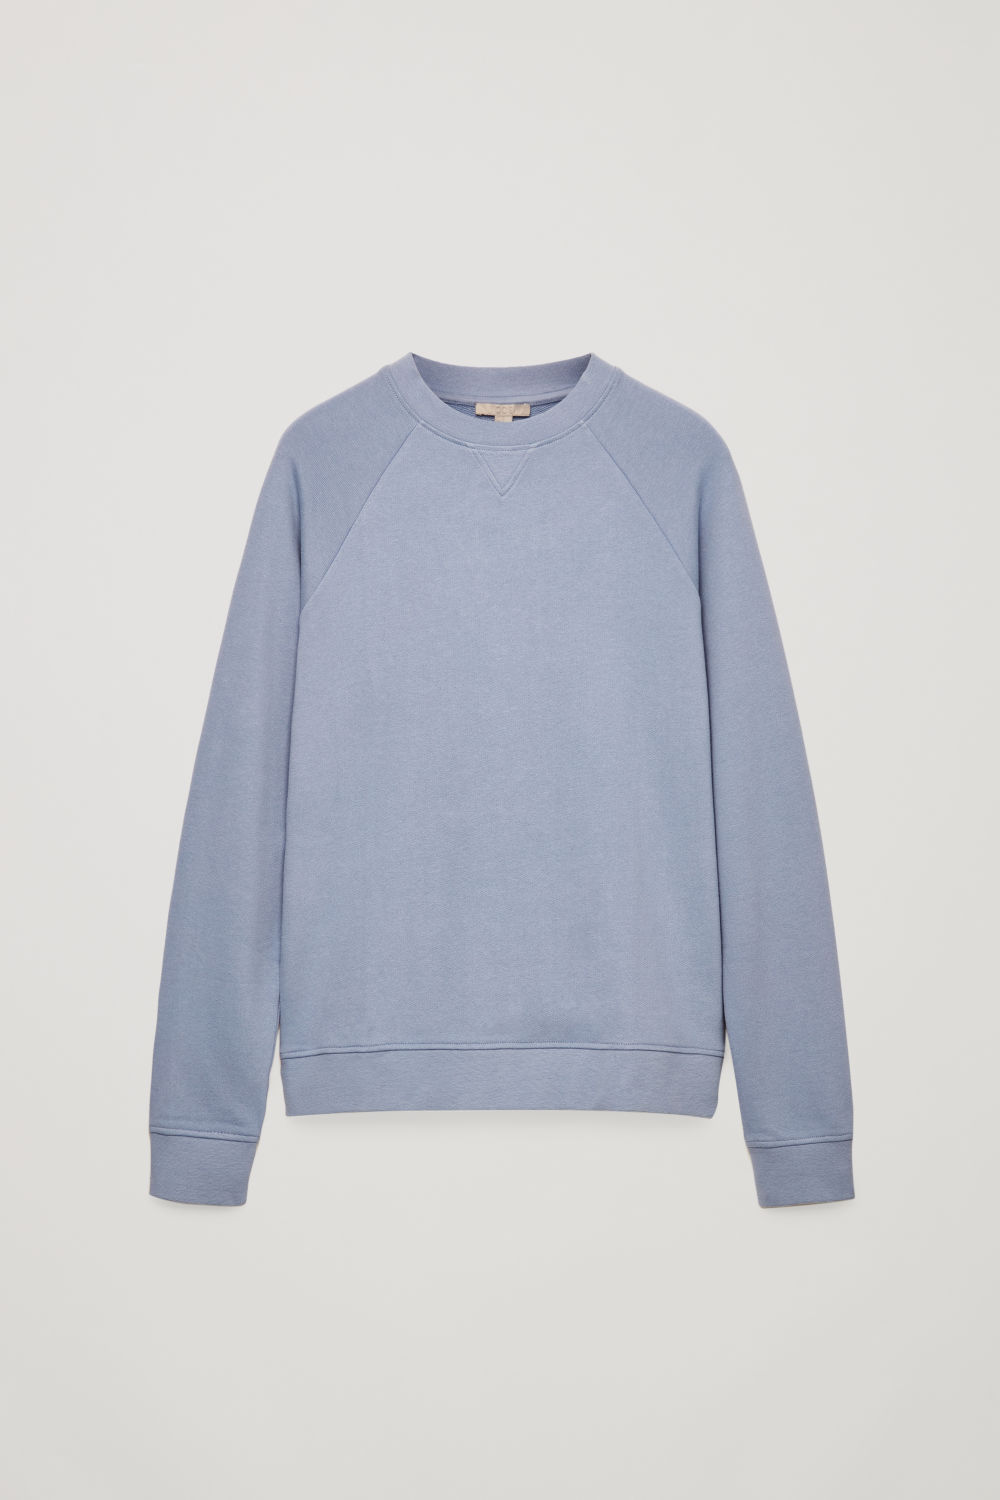 RELAXED JERSEY SWEATSHIRT